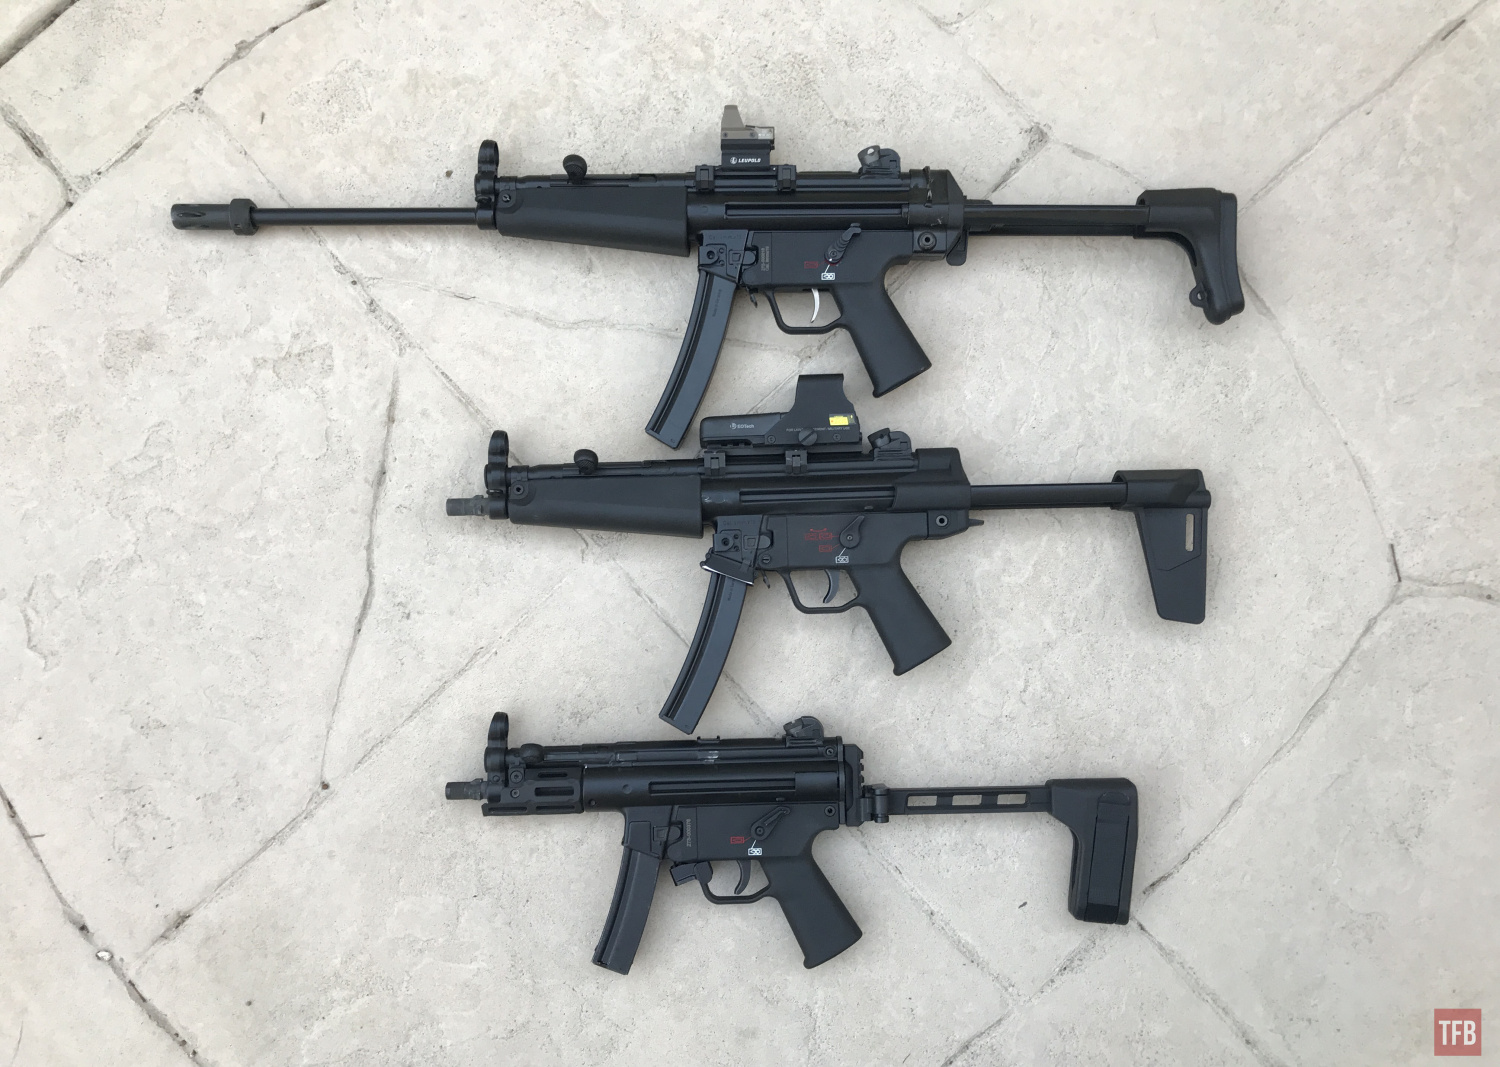 HK SP5L next to SP5 and SP5K PDW